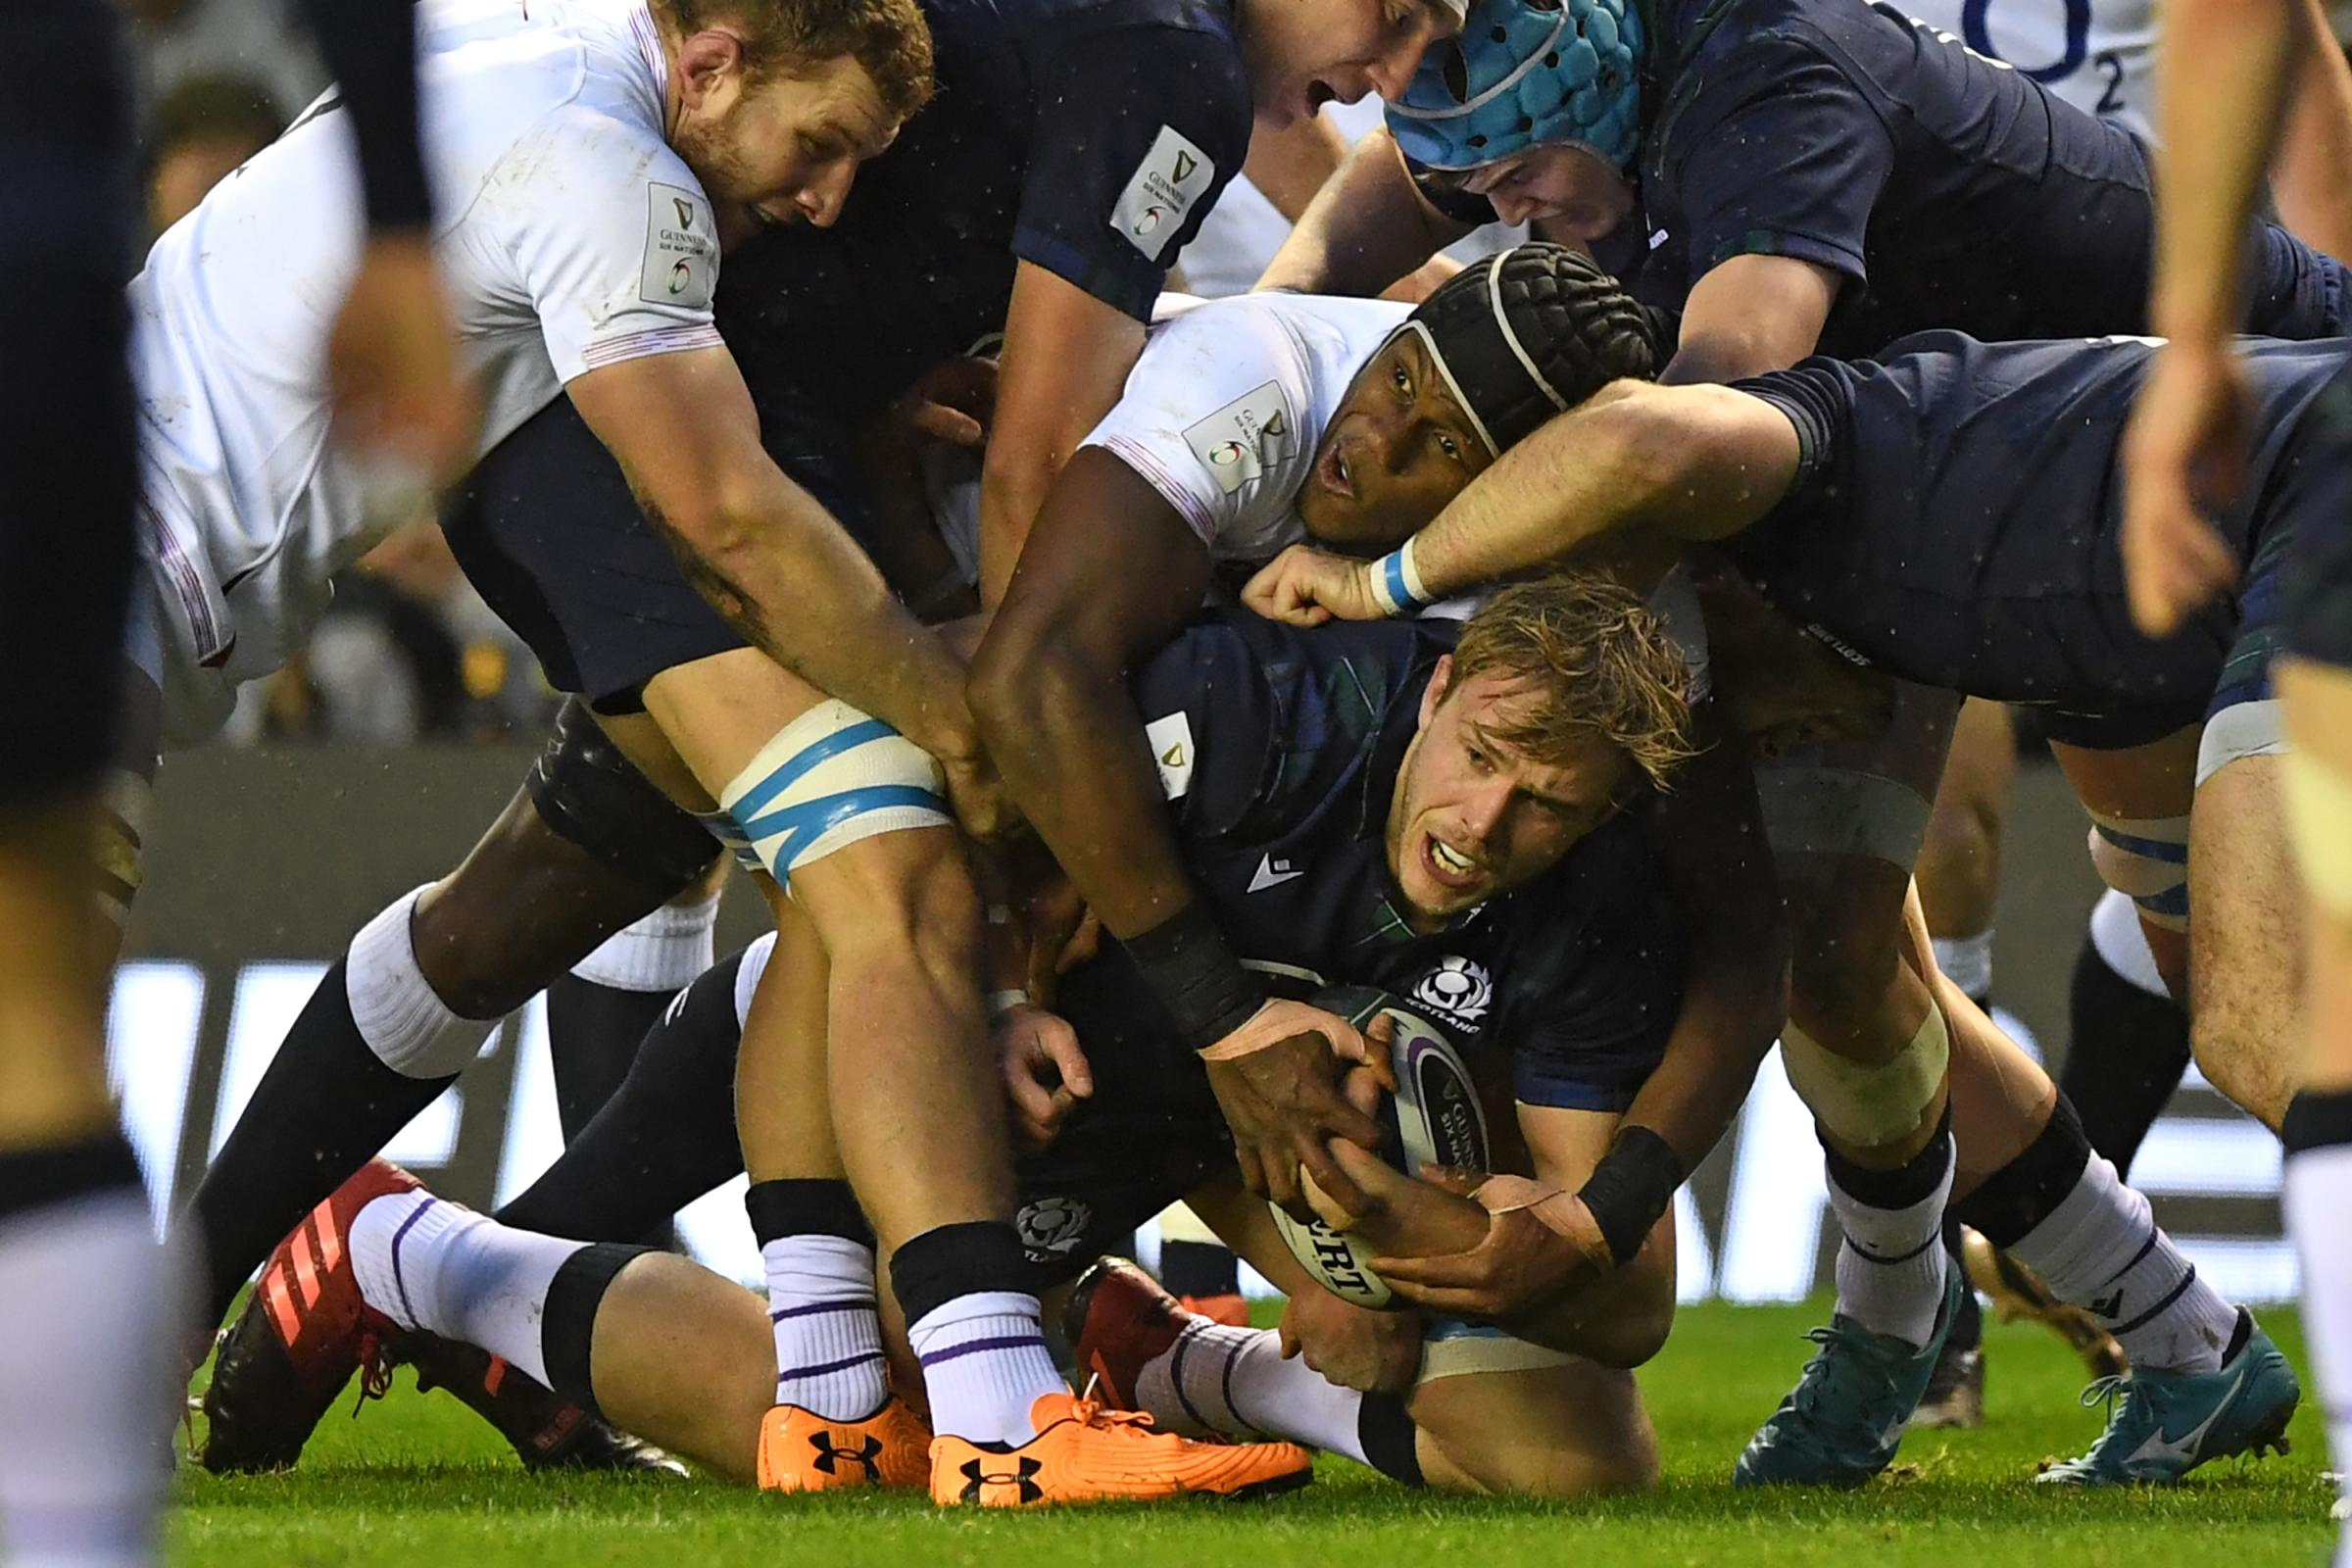 Scotland A v England A rugby match cancelled due to Covid cases | The  National